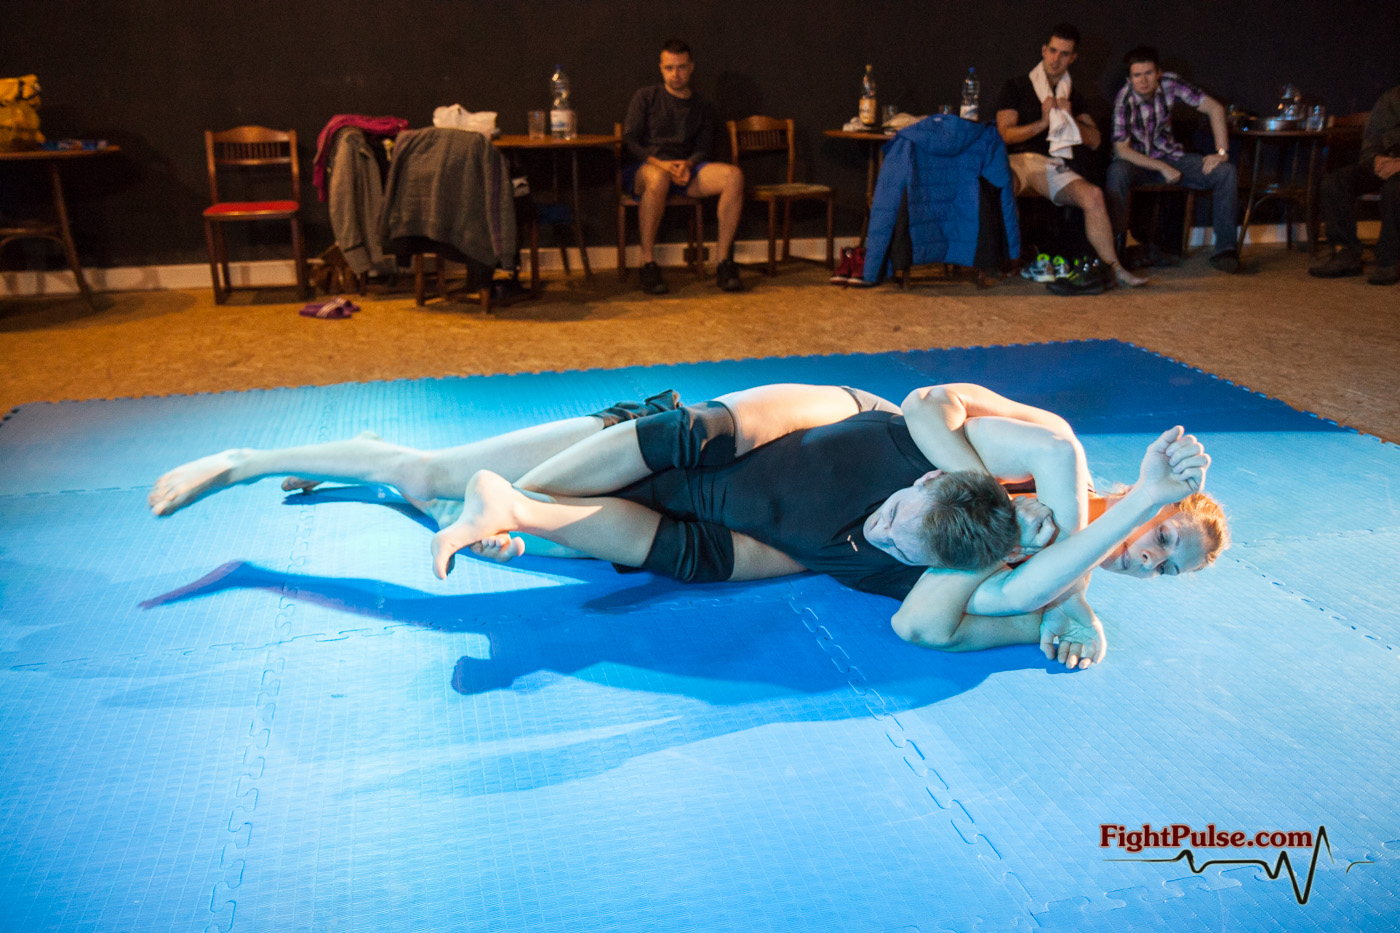 Mixed wrestling videos | Fight Pulse